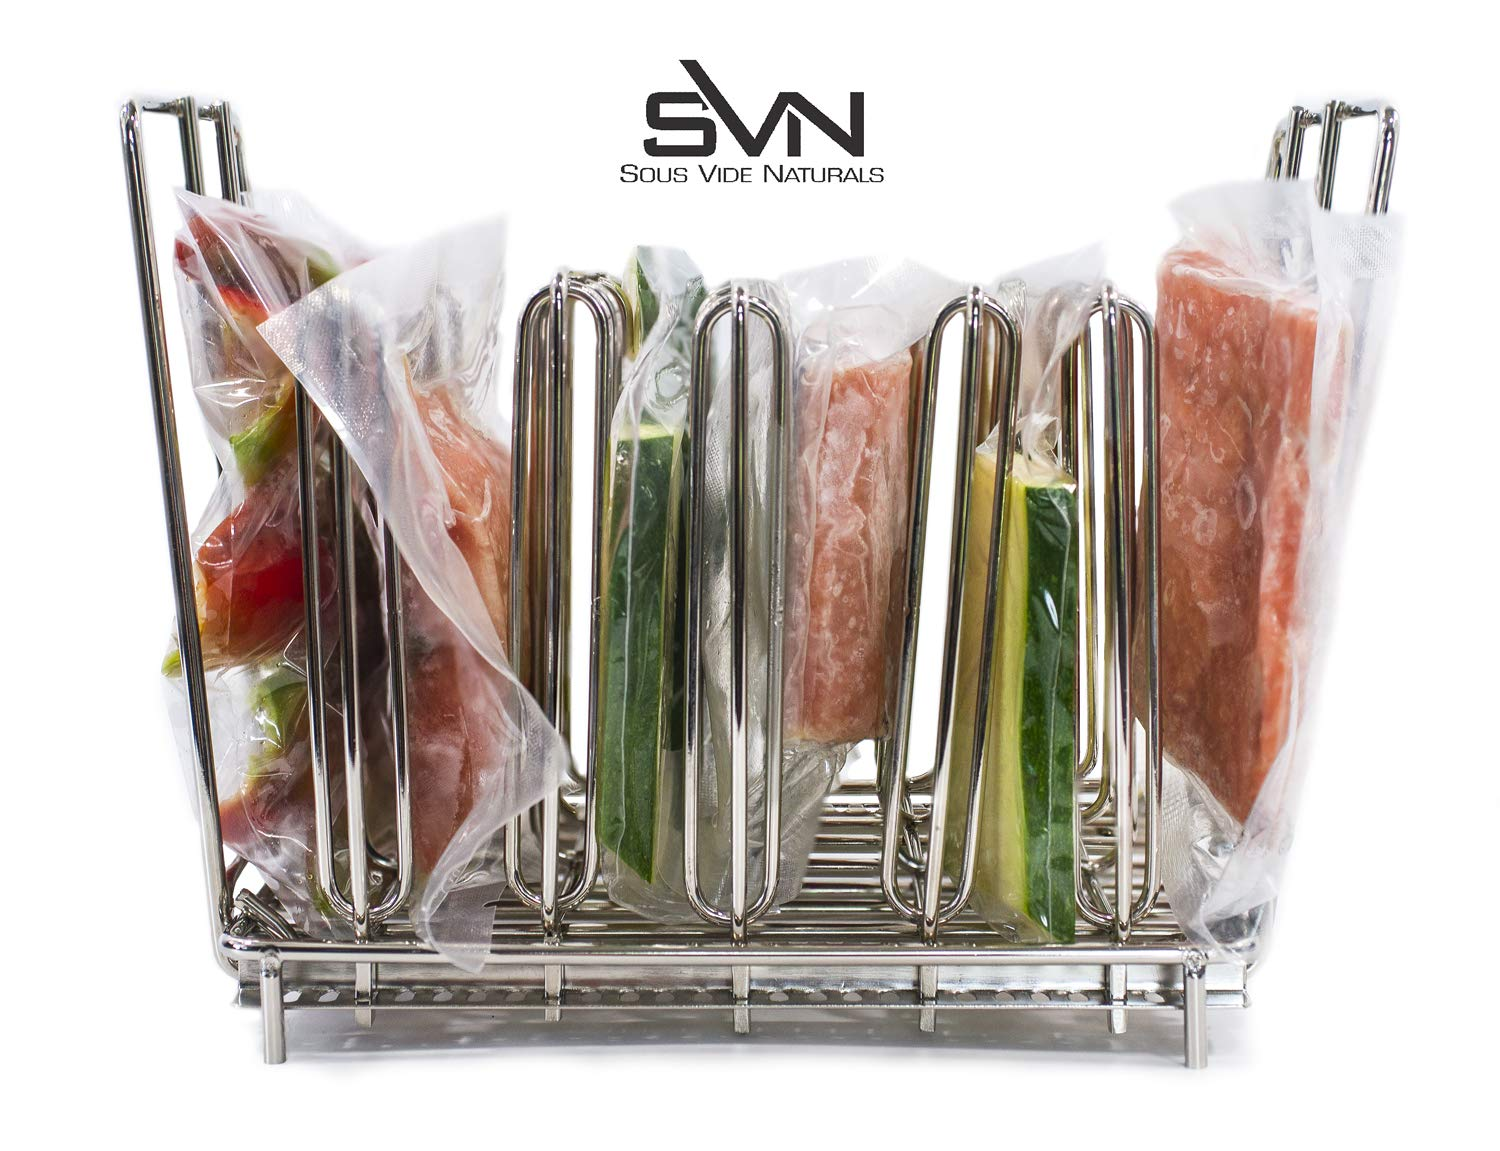 Sous Vide Rack For Anova, Nomiku, Sansaire, PolyScience All Sous Vide Cooker Immersion Circulator Cookers - Adjustable Stainless Steel, Collapsible, Even Warming - Sous Vide Rack Divider Is Heavy Duty & Rust Resistant Works With Most Sous Vide Containers by OXHE